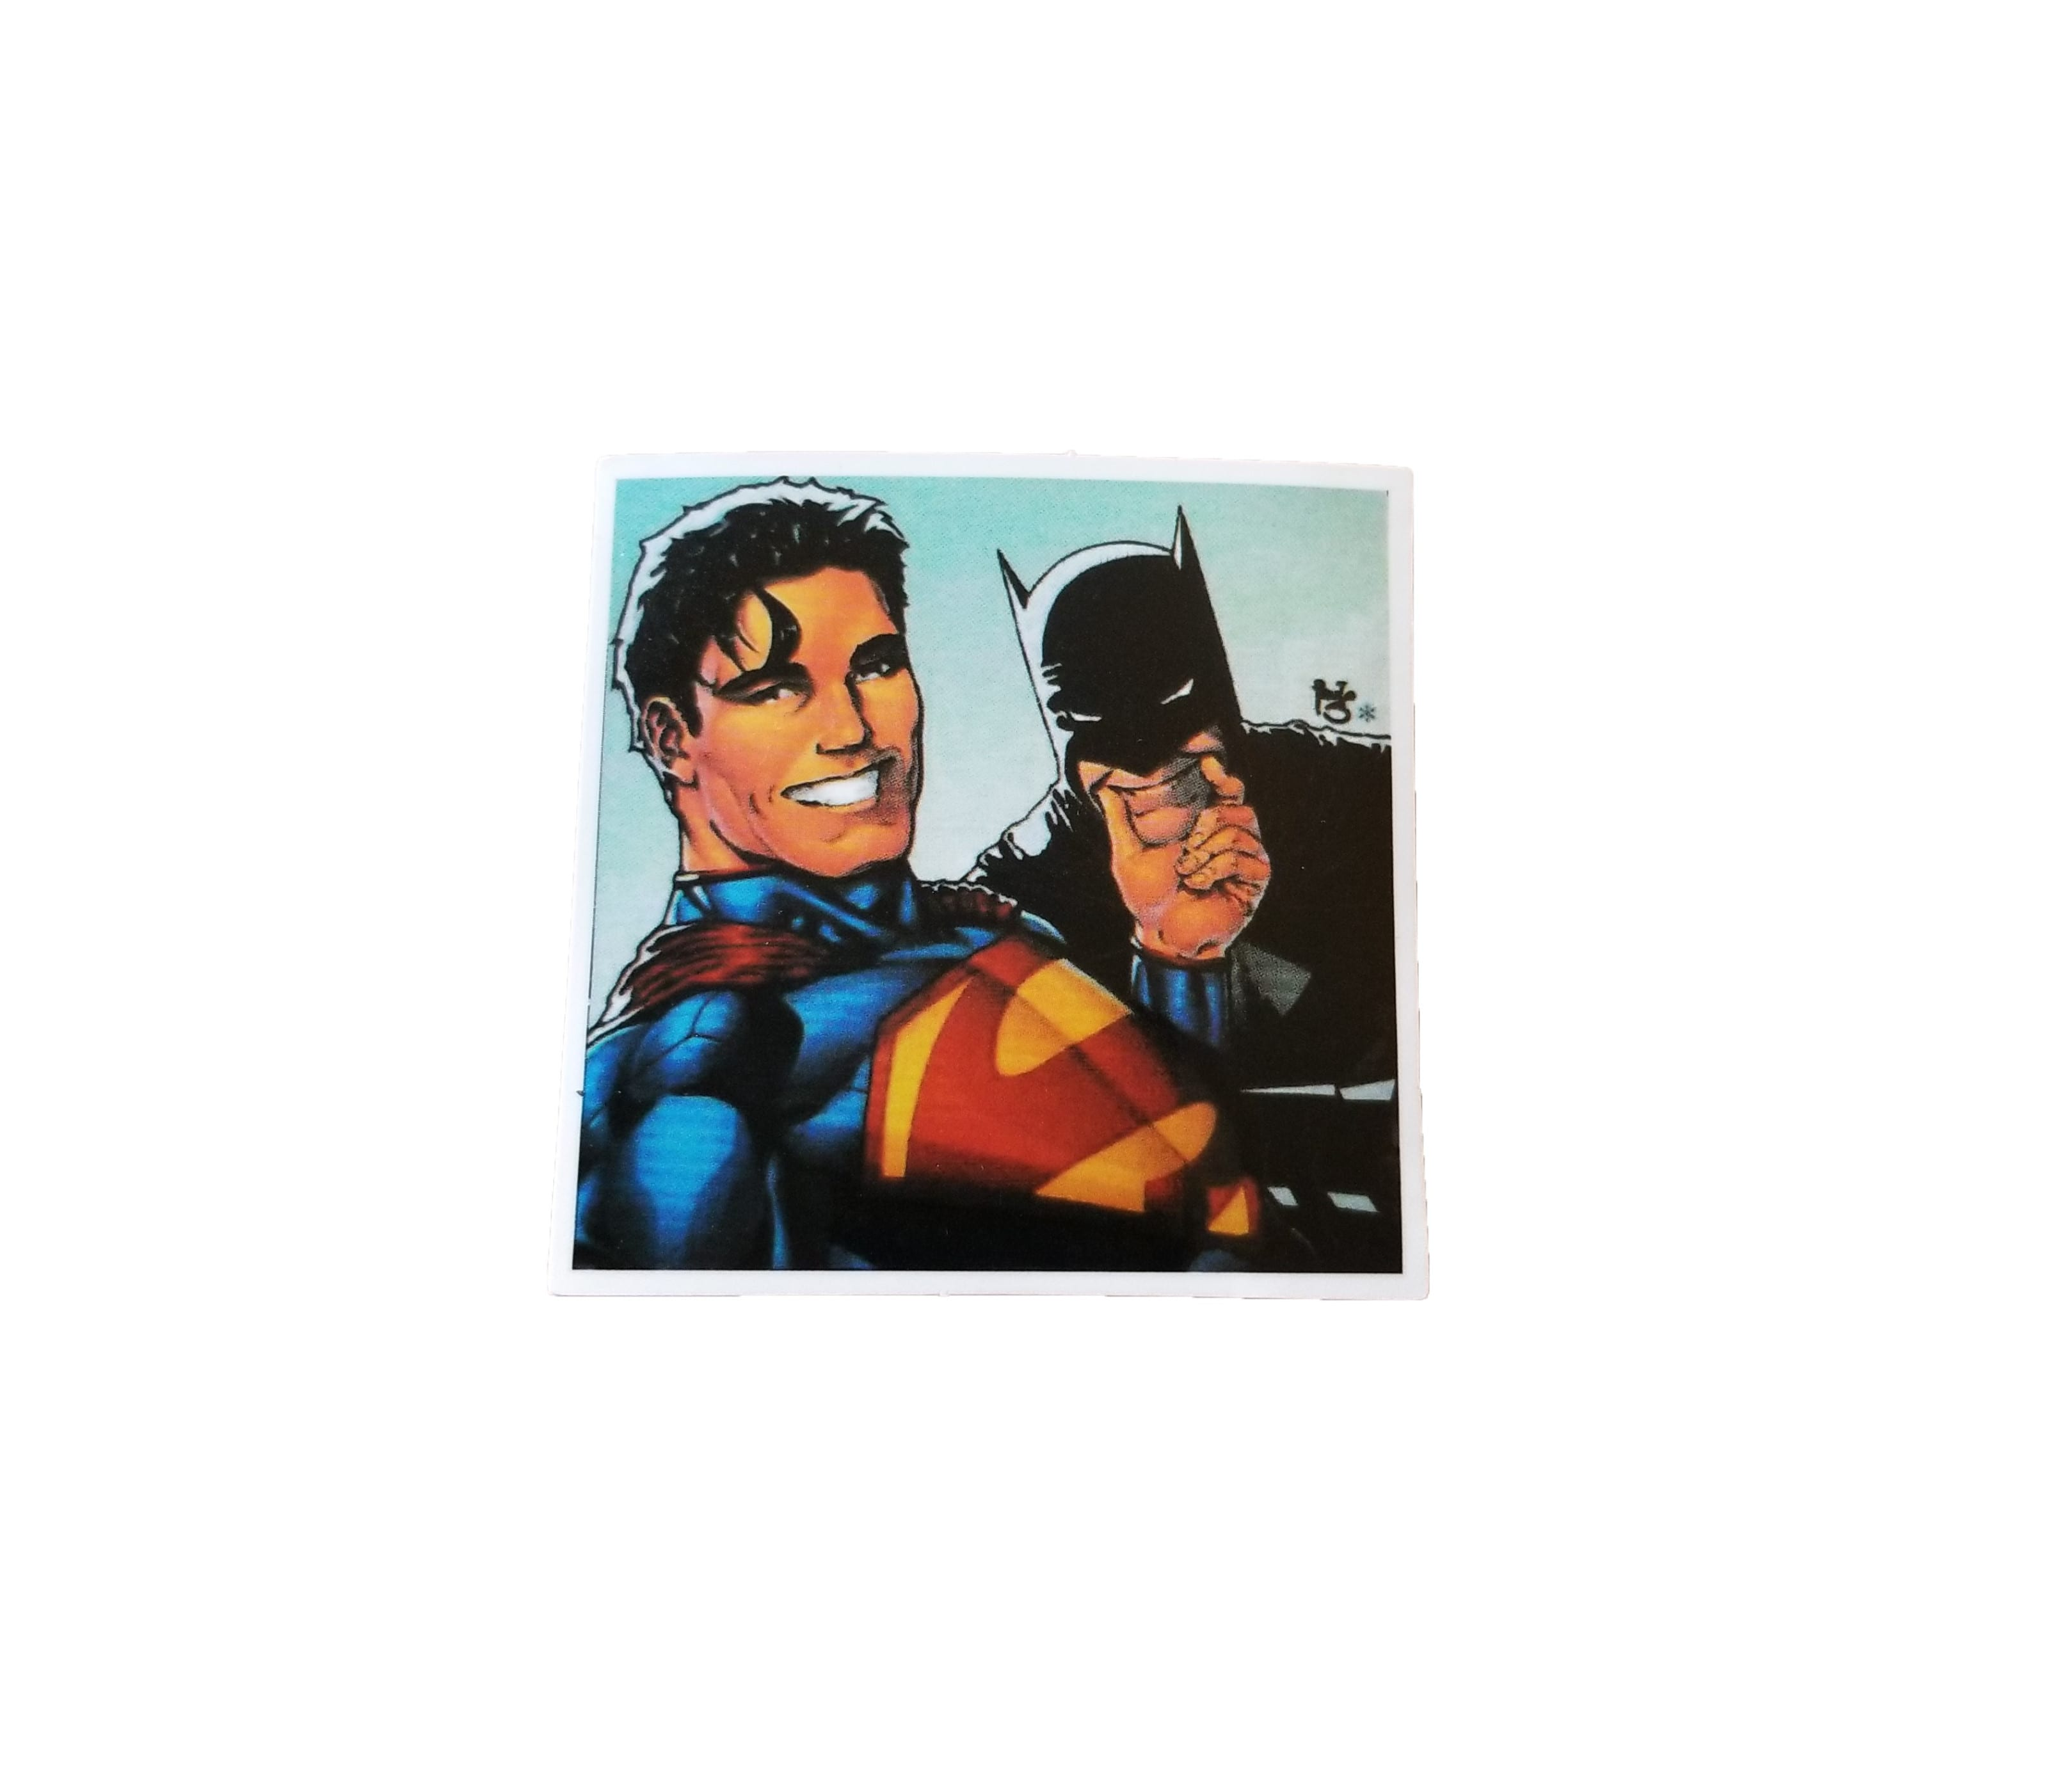 A sticker of Superman smiling while holding Batman by the Chin